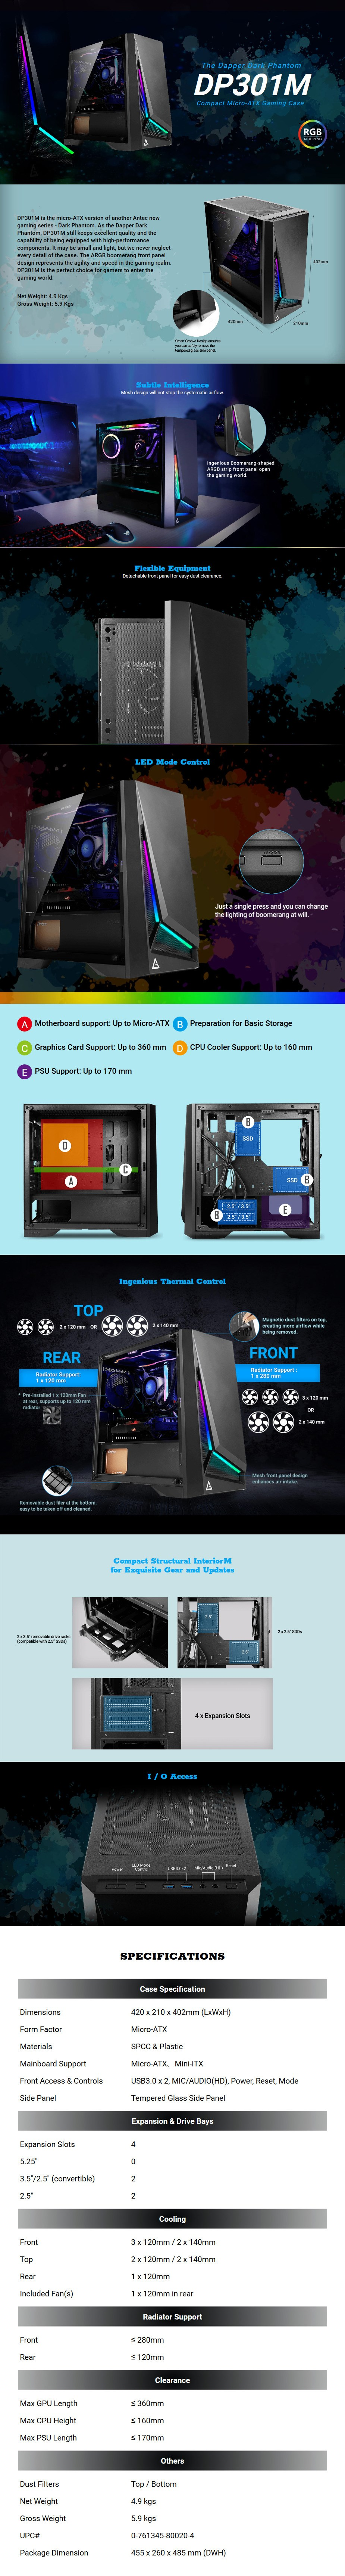 Antec DP301MA RGB Tempered Glass Compact Micro-ATX Case - Desktop Overview 1